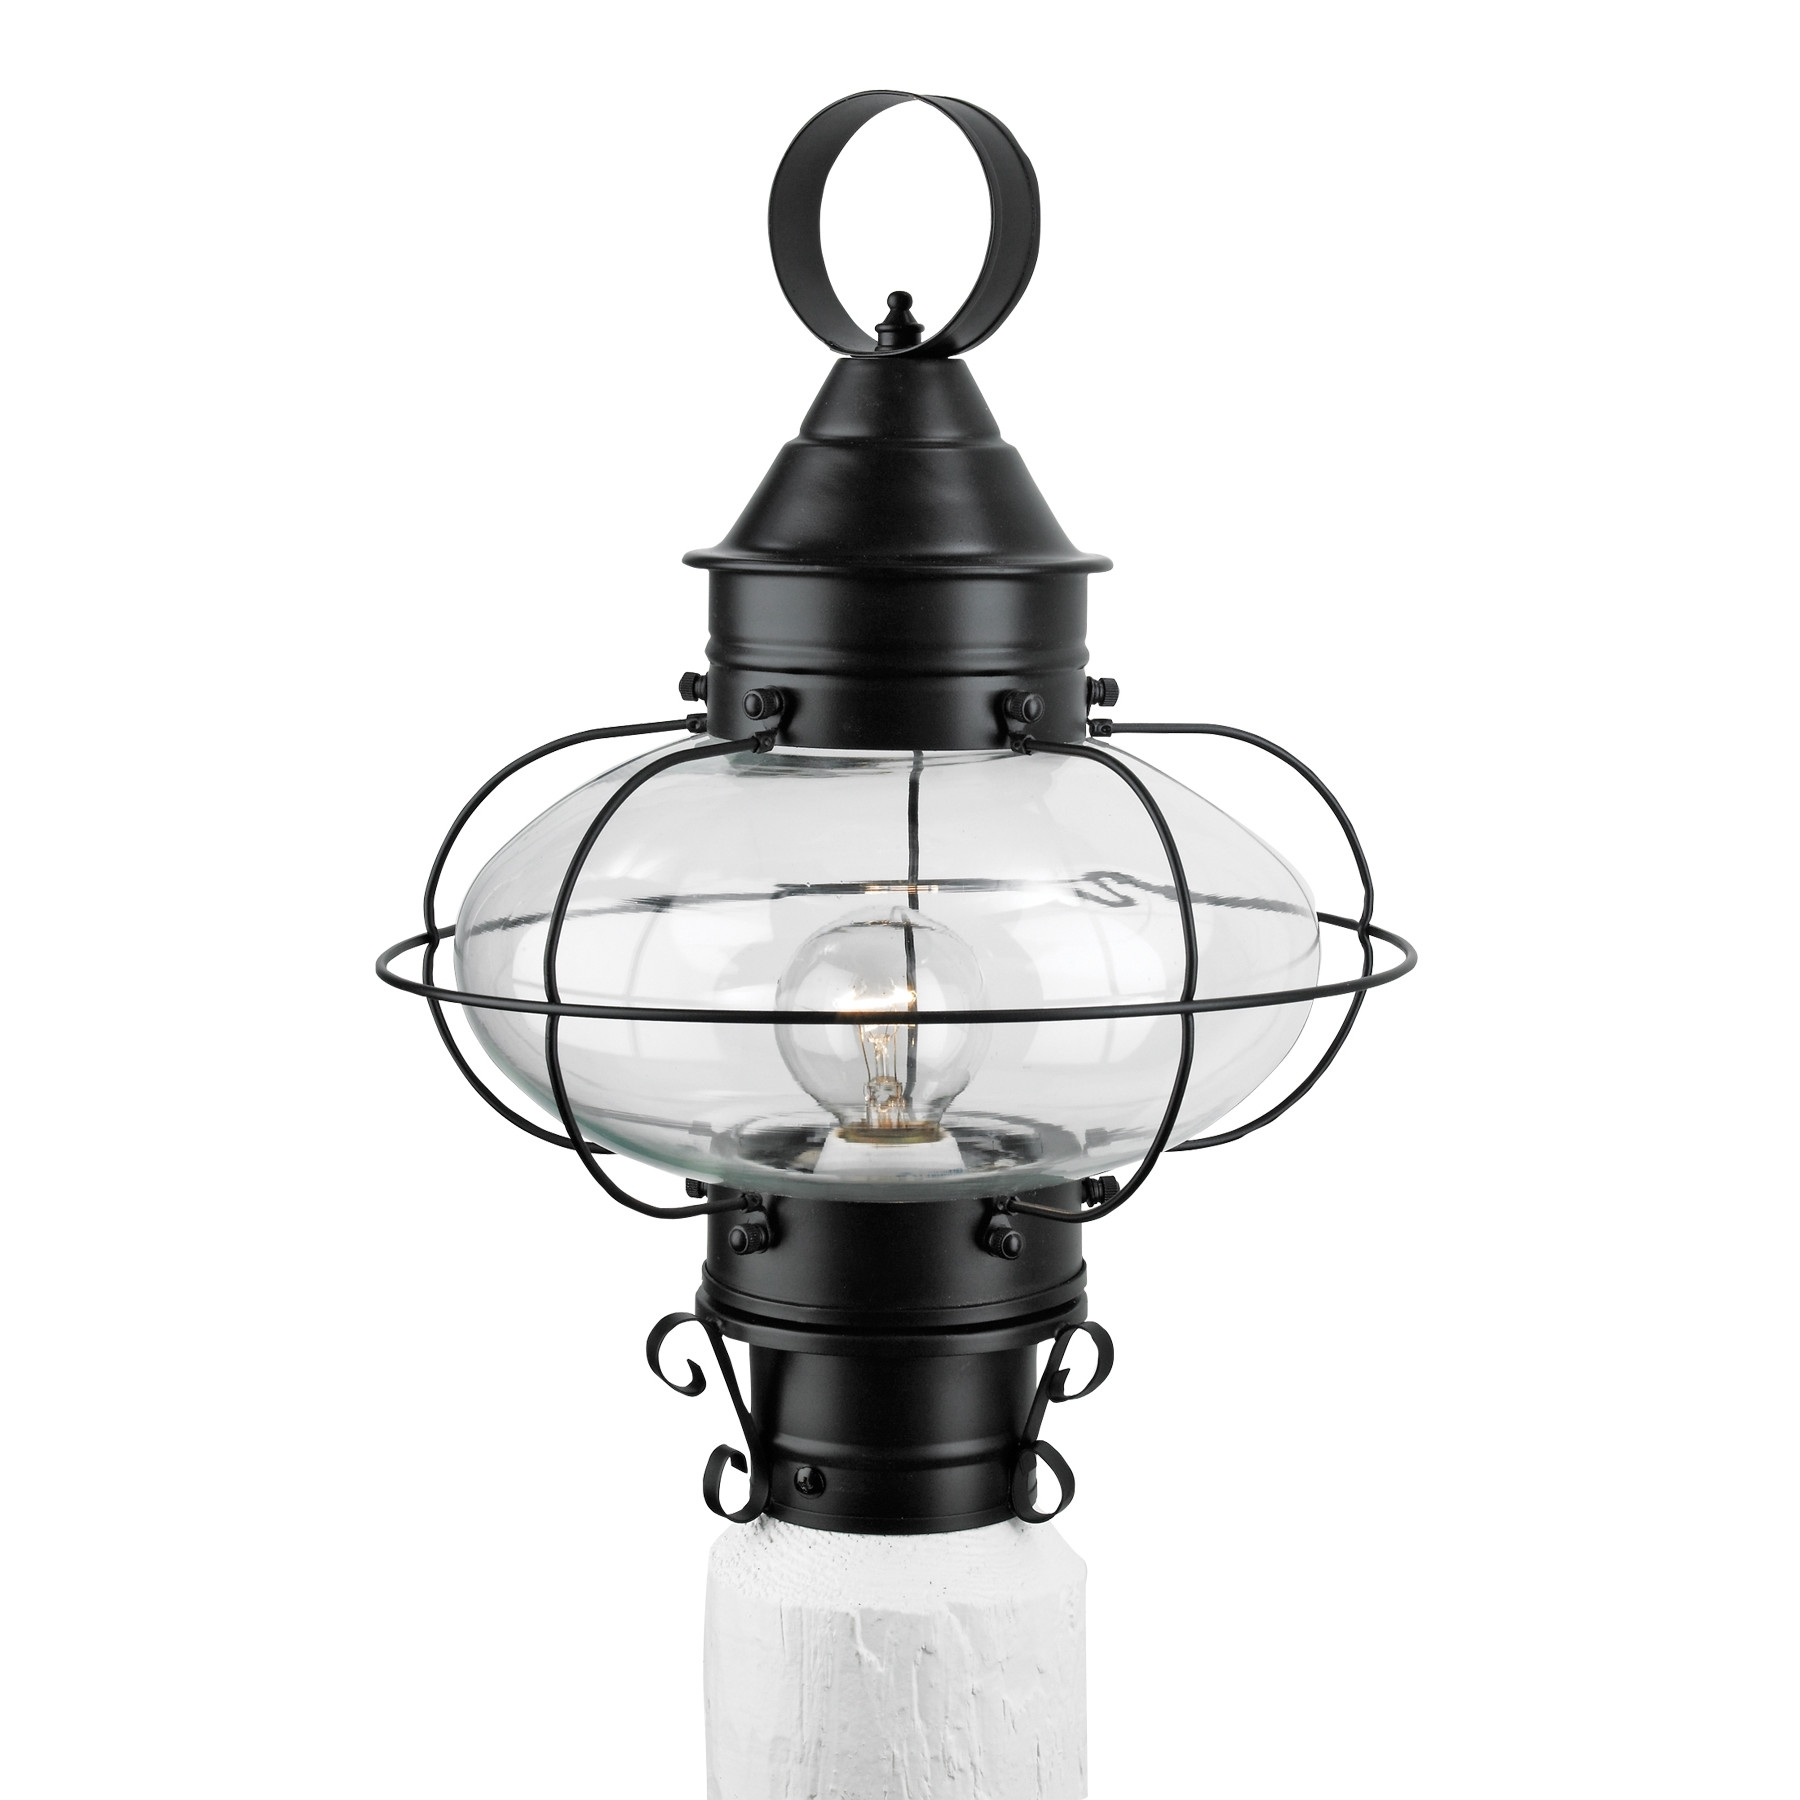 Post Lights Wayfair Cottage Onion 1 Light Outdoor Lantern ~ Loversiq With Regard To Well Liked Wayfair Led Post Lights (View 11 of 20)